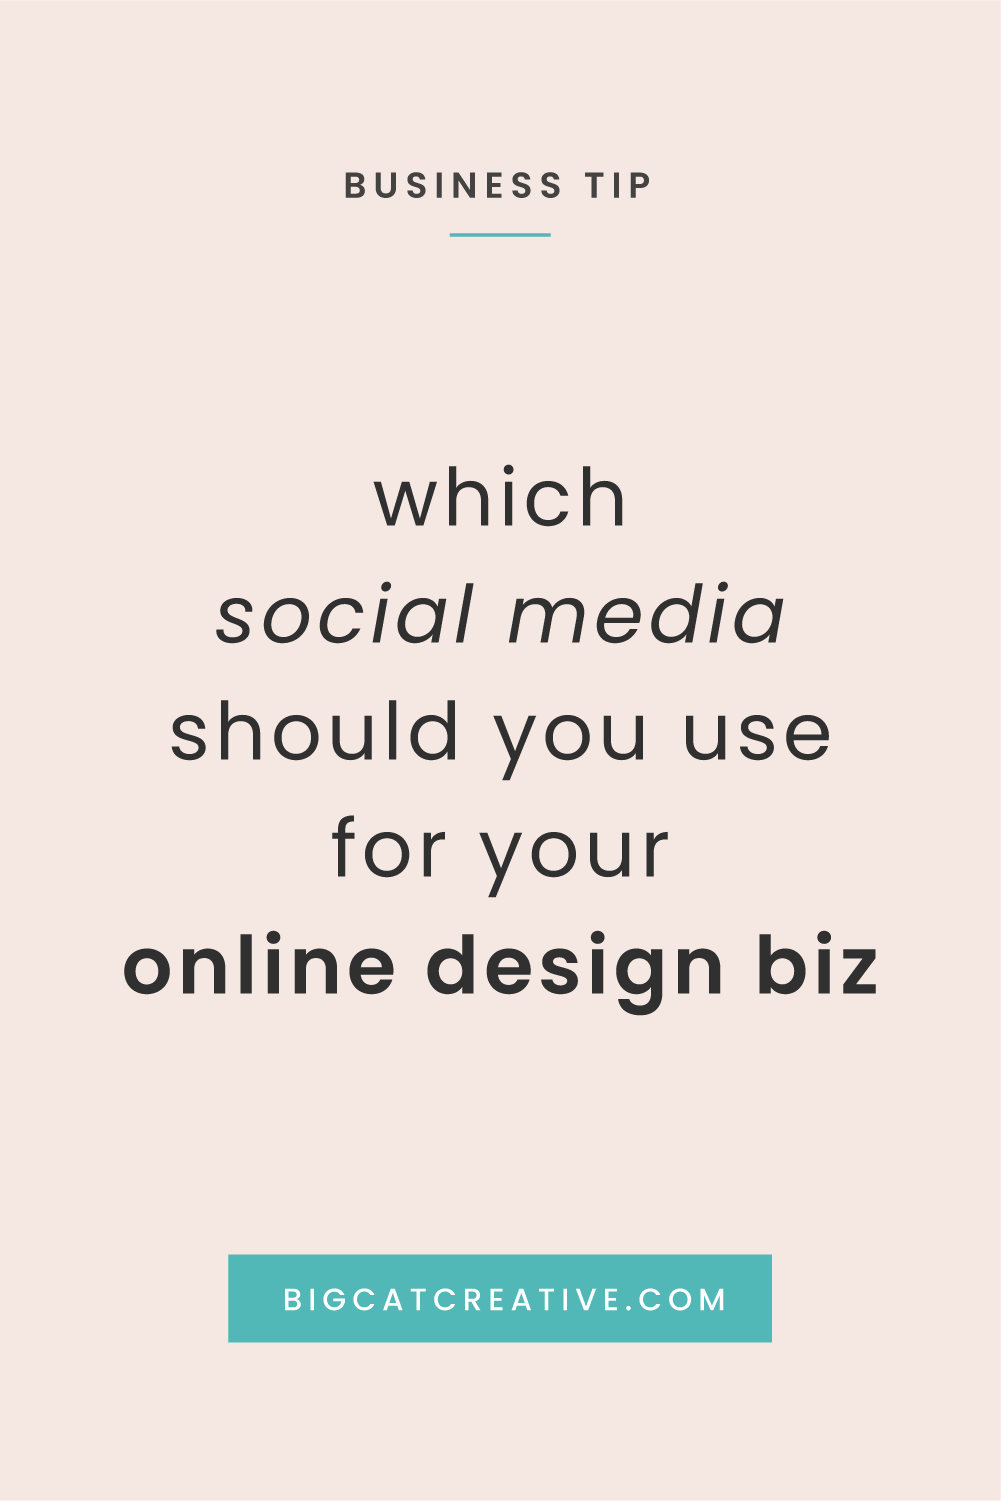 Social Media for Online Design Businesses | How to Decide Which Social Media to use for your Online Business | Social Media and Business Tips by Big Cat Creative | Social Media for Designers | How to Use Social Media Effectively for Online Business